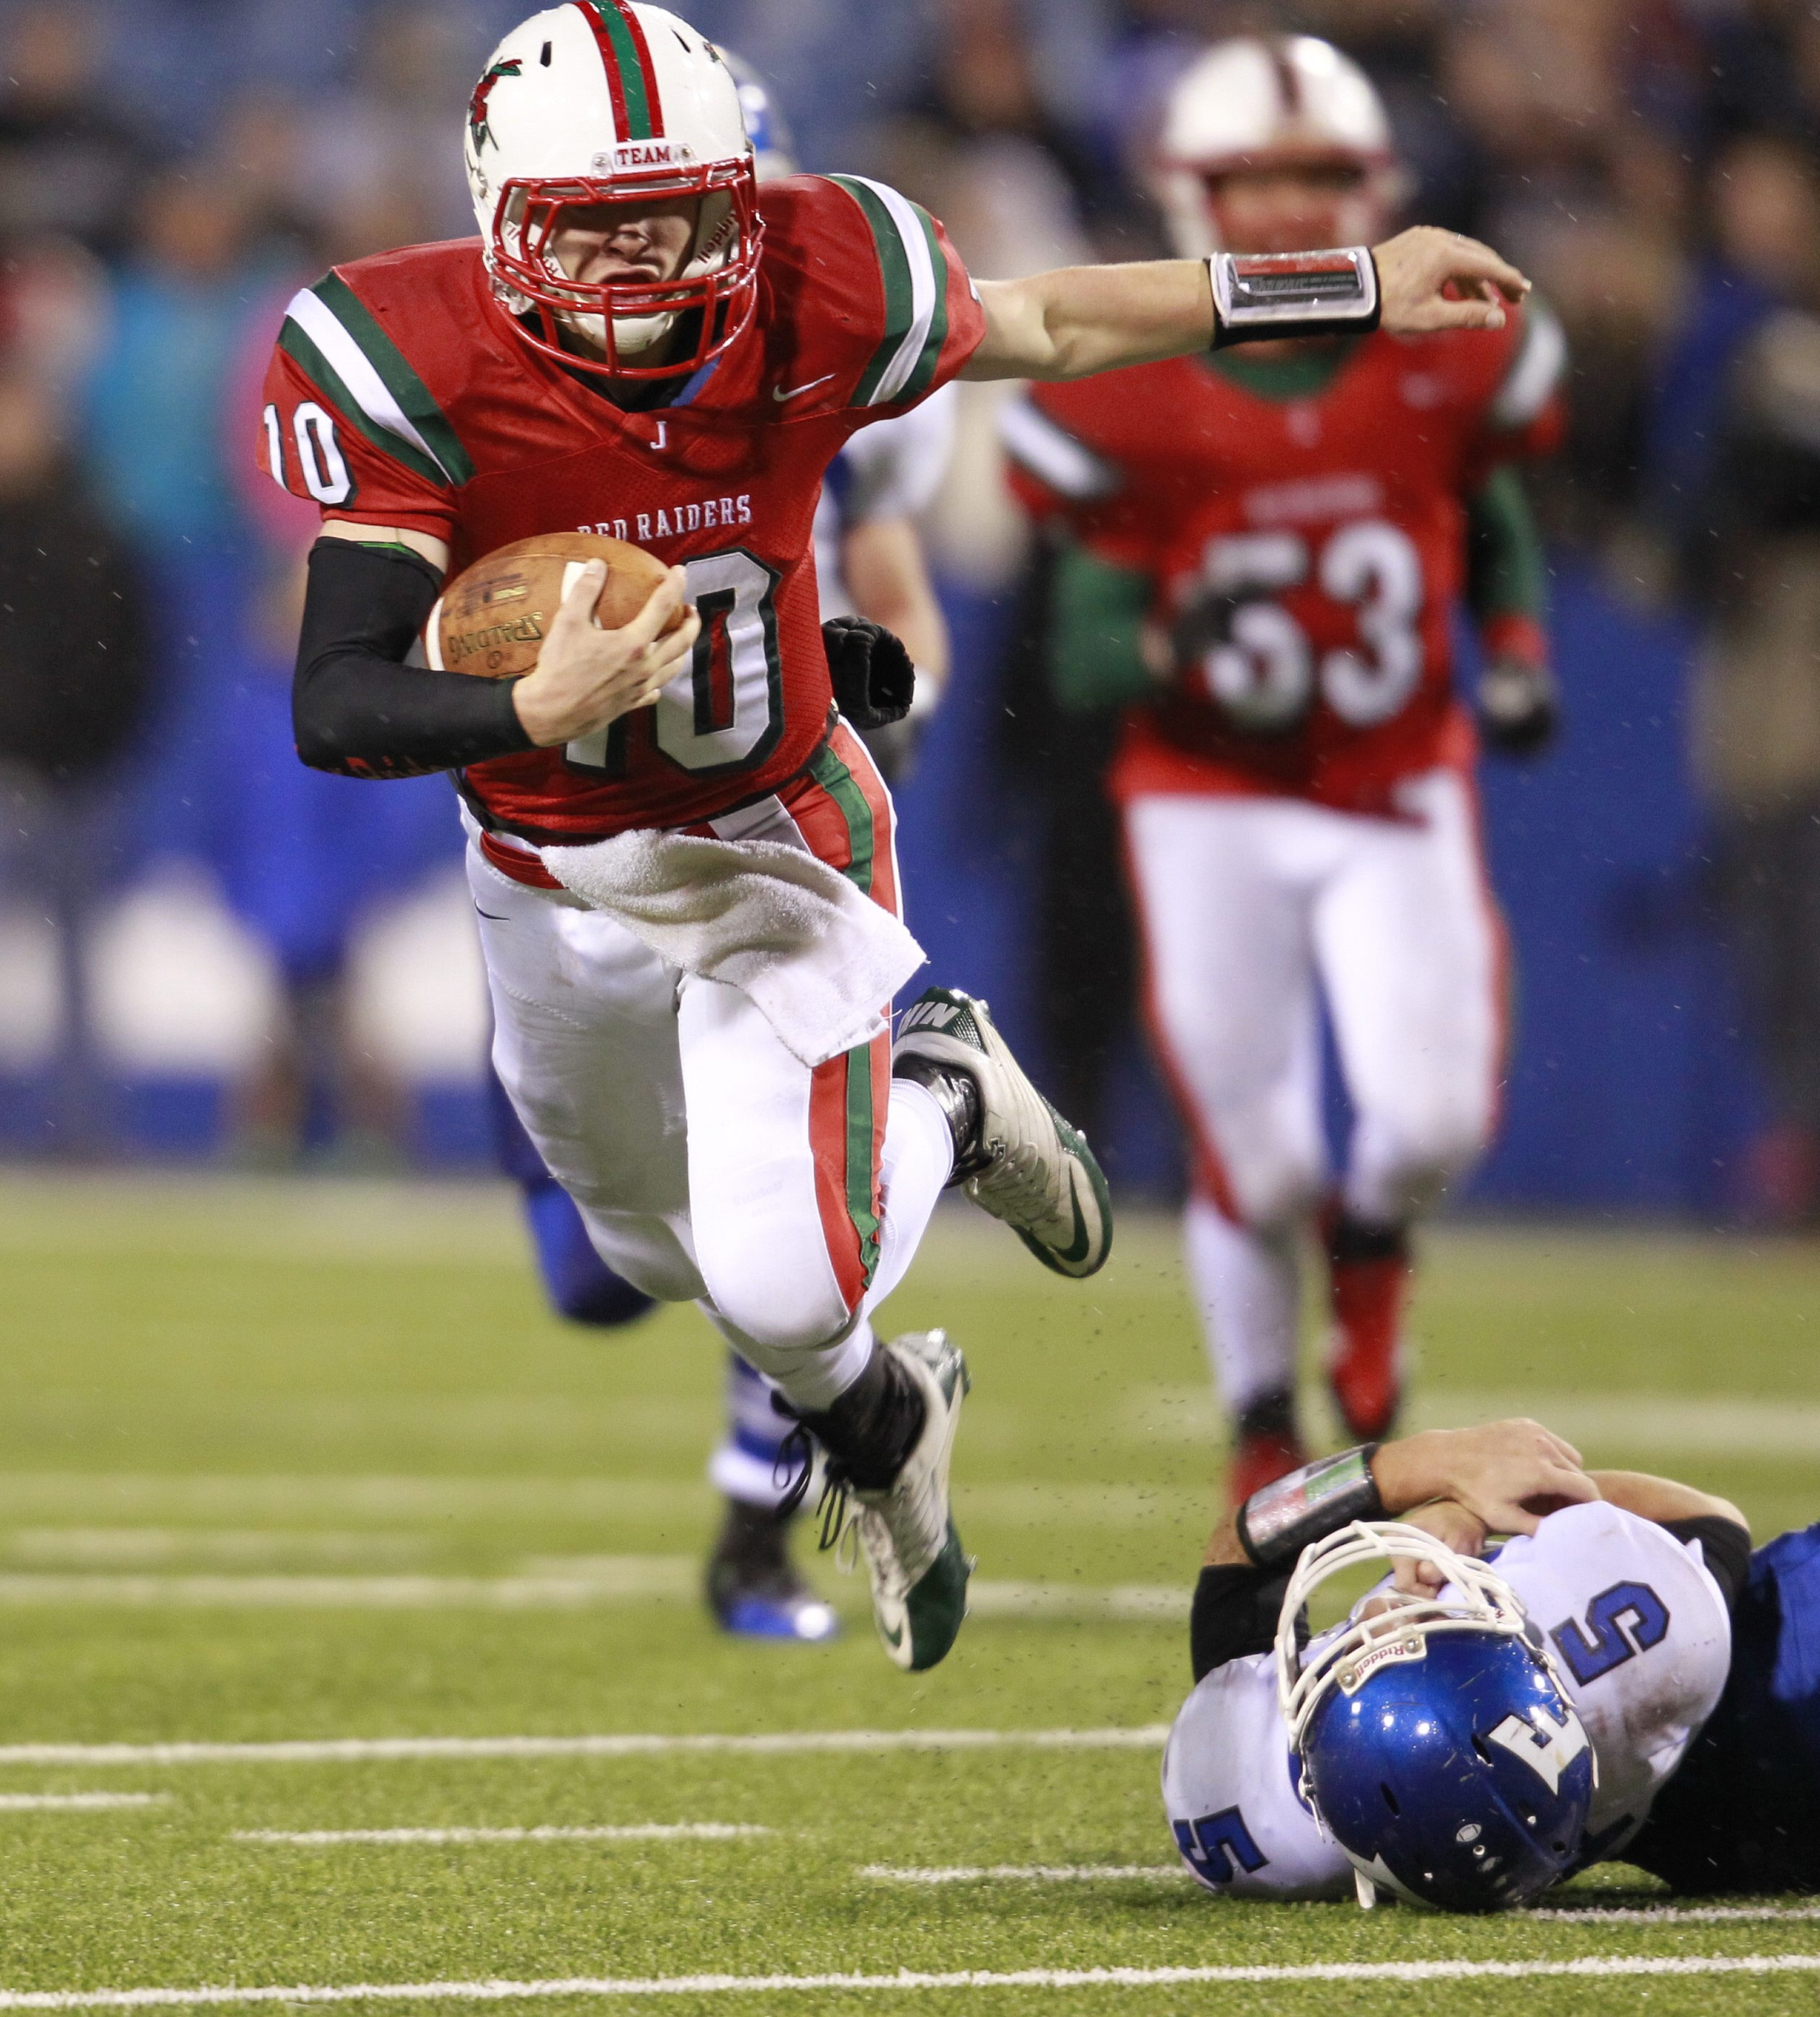 Jamestown quarterback ,Jacob Sisson, leaps over Frontier player, Vinny Pupo (5) during first half actio during the Class AA Championship,at Ralph Wilson Stadium,on. Saturday, Nov. 9, 2013.(Harry Scull Jr./Buffalo News)